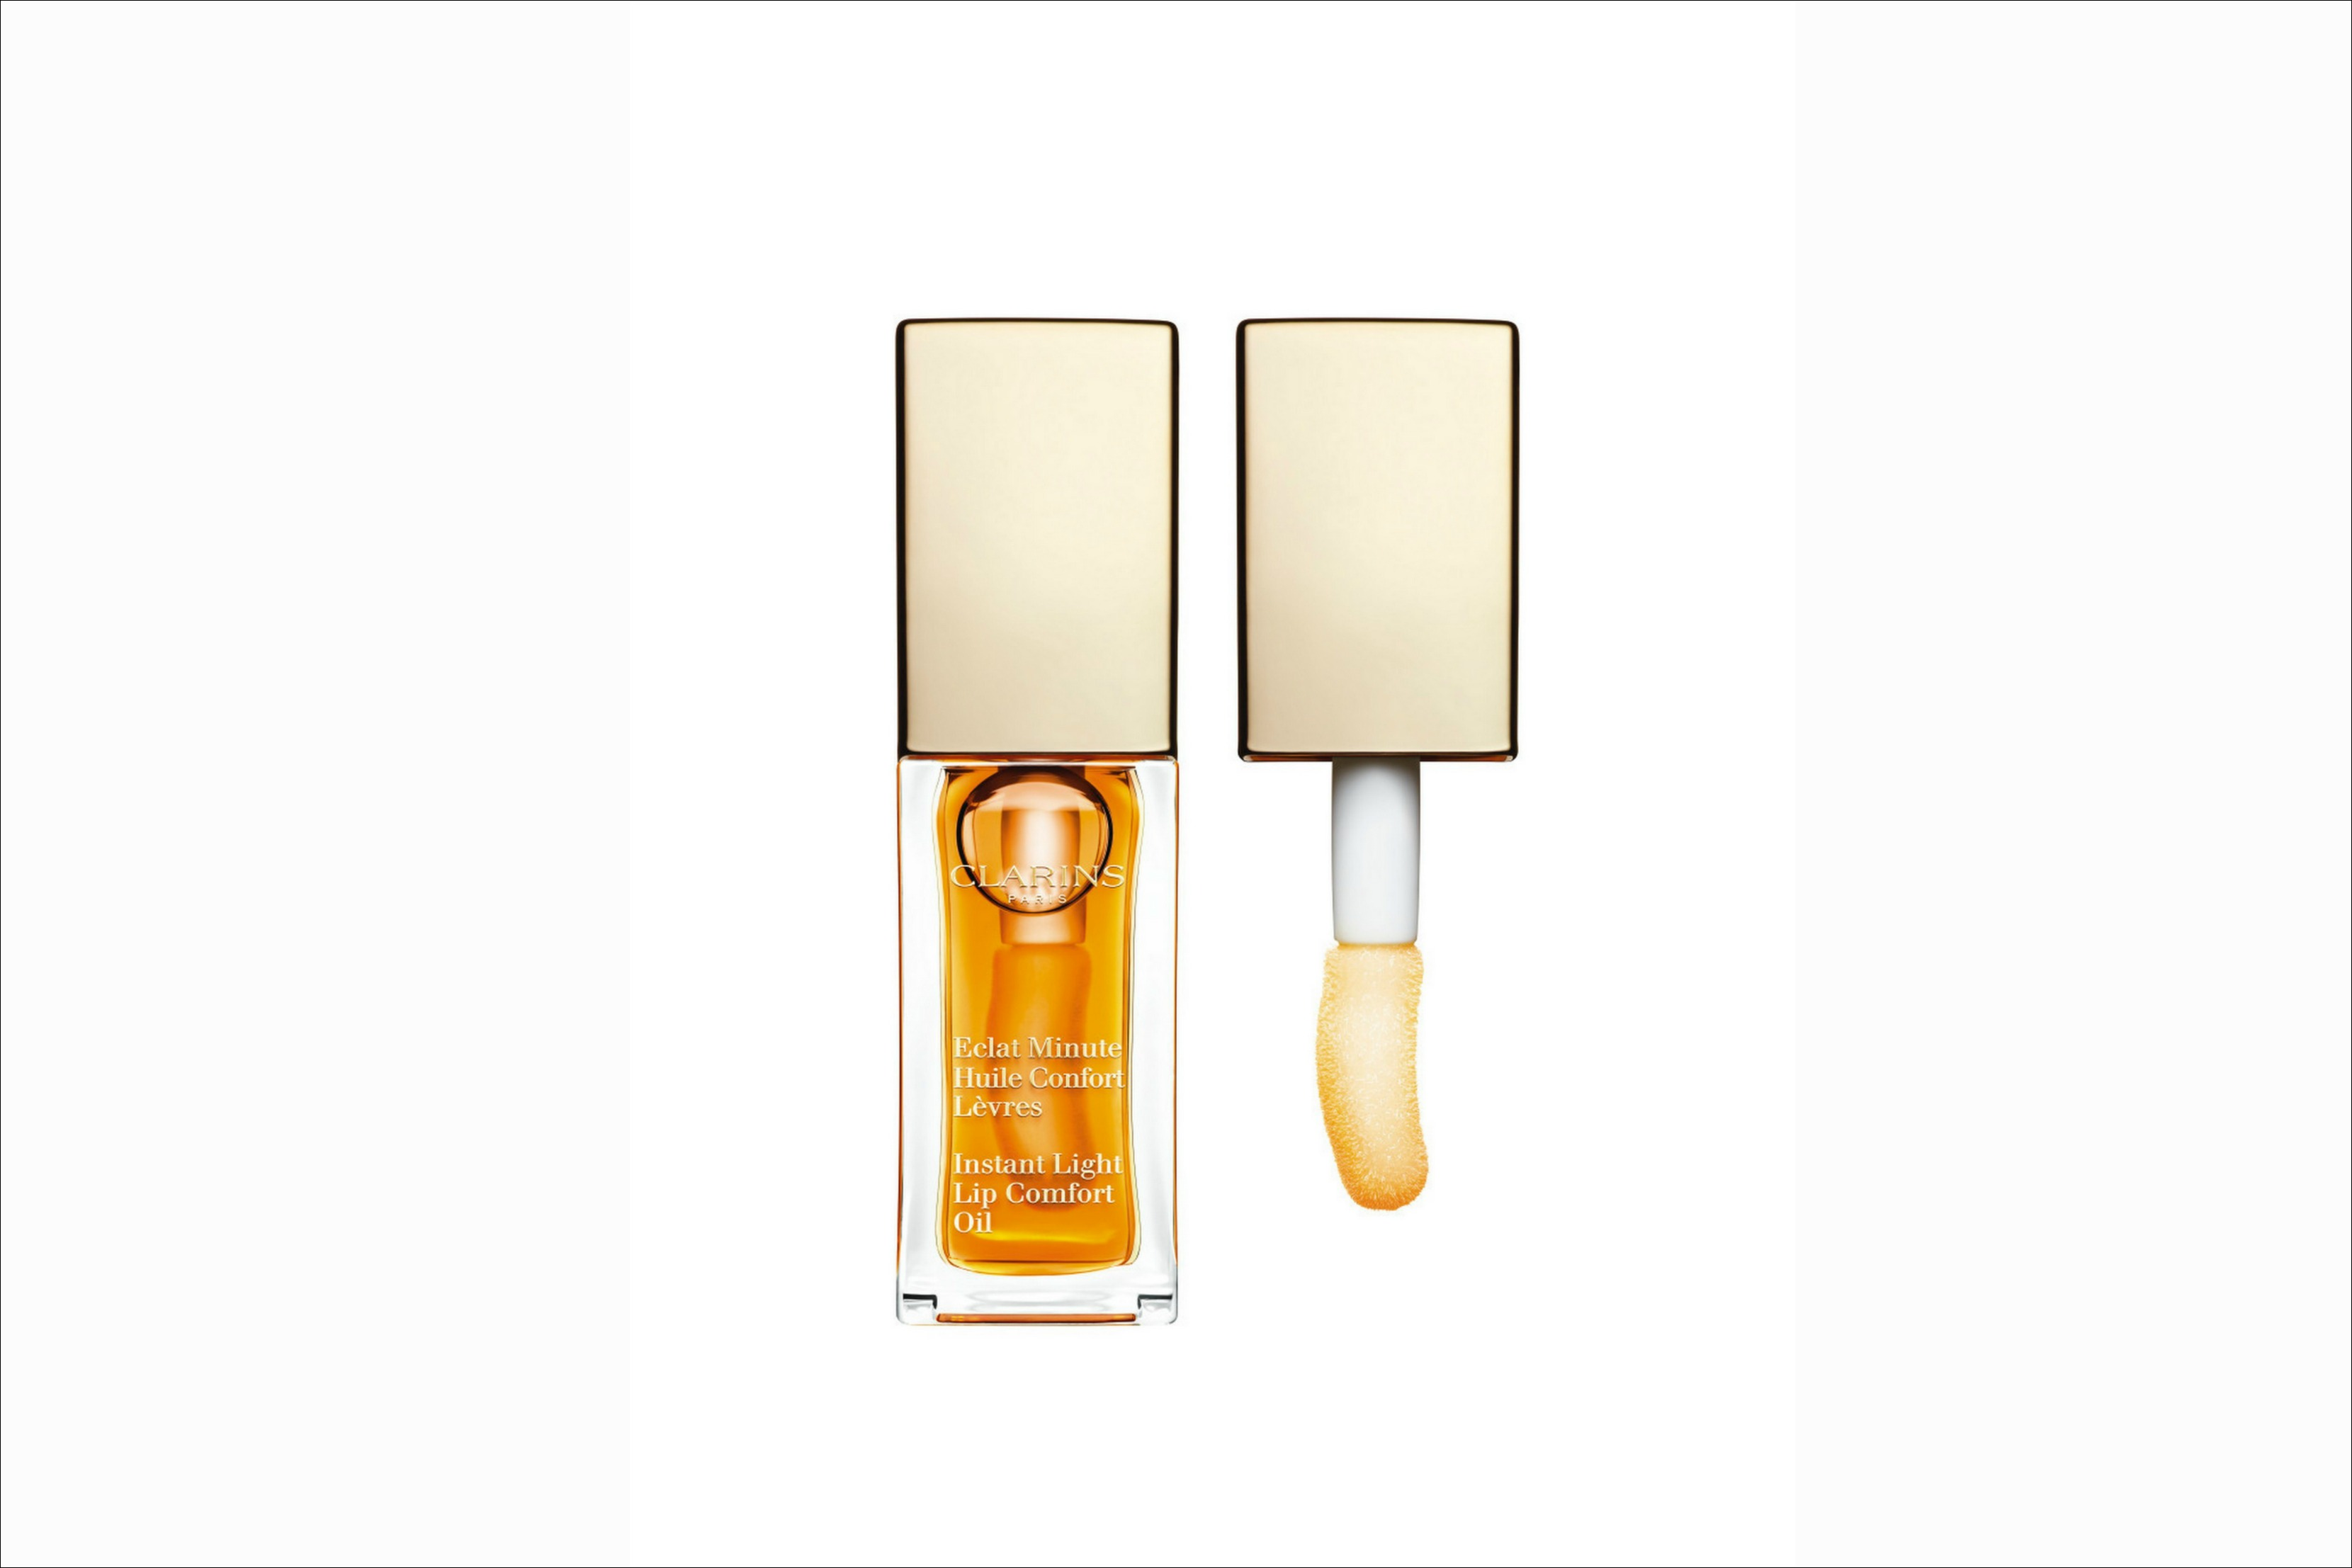 Clarins Lip Oil Comfort beauty product